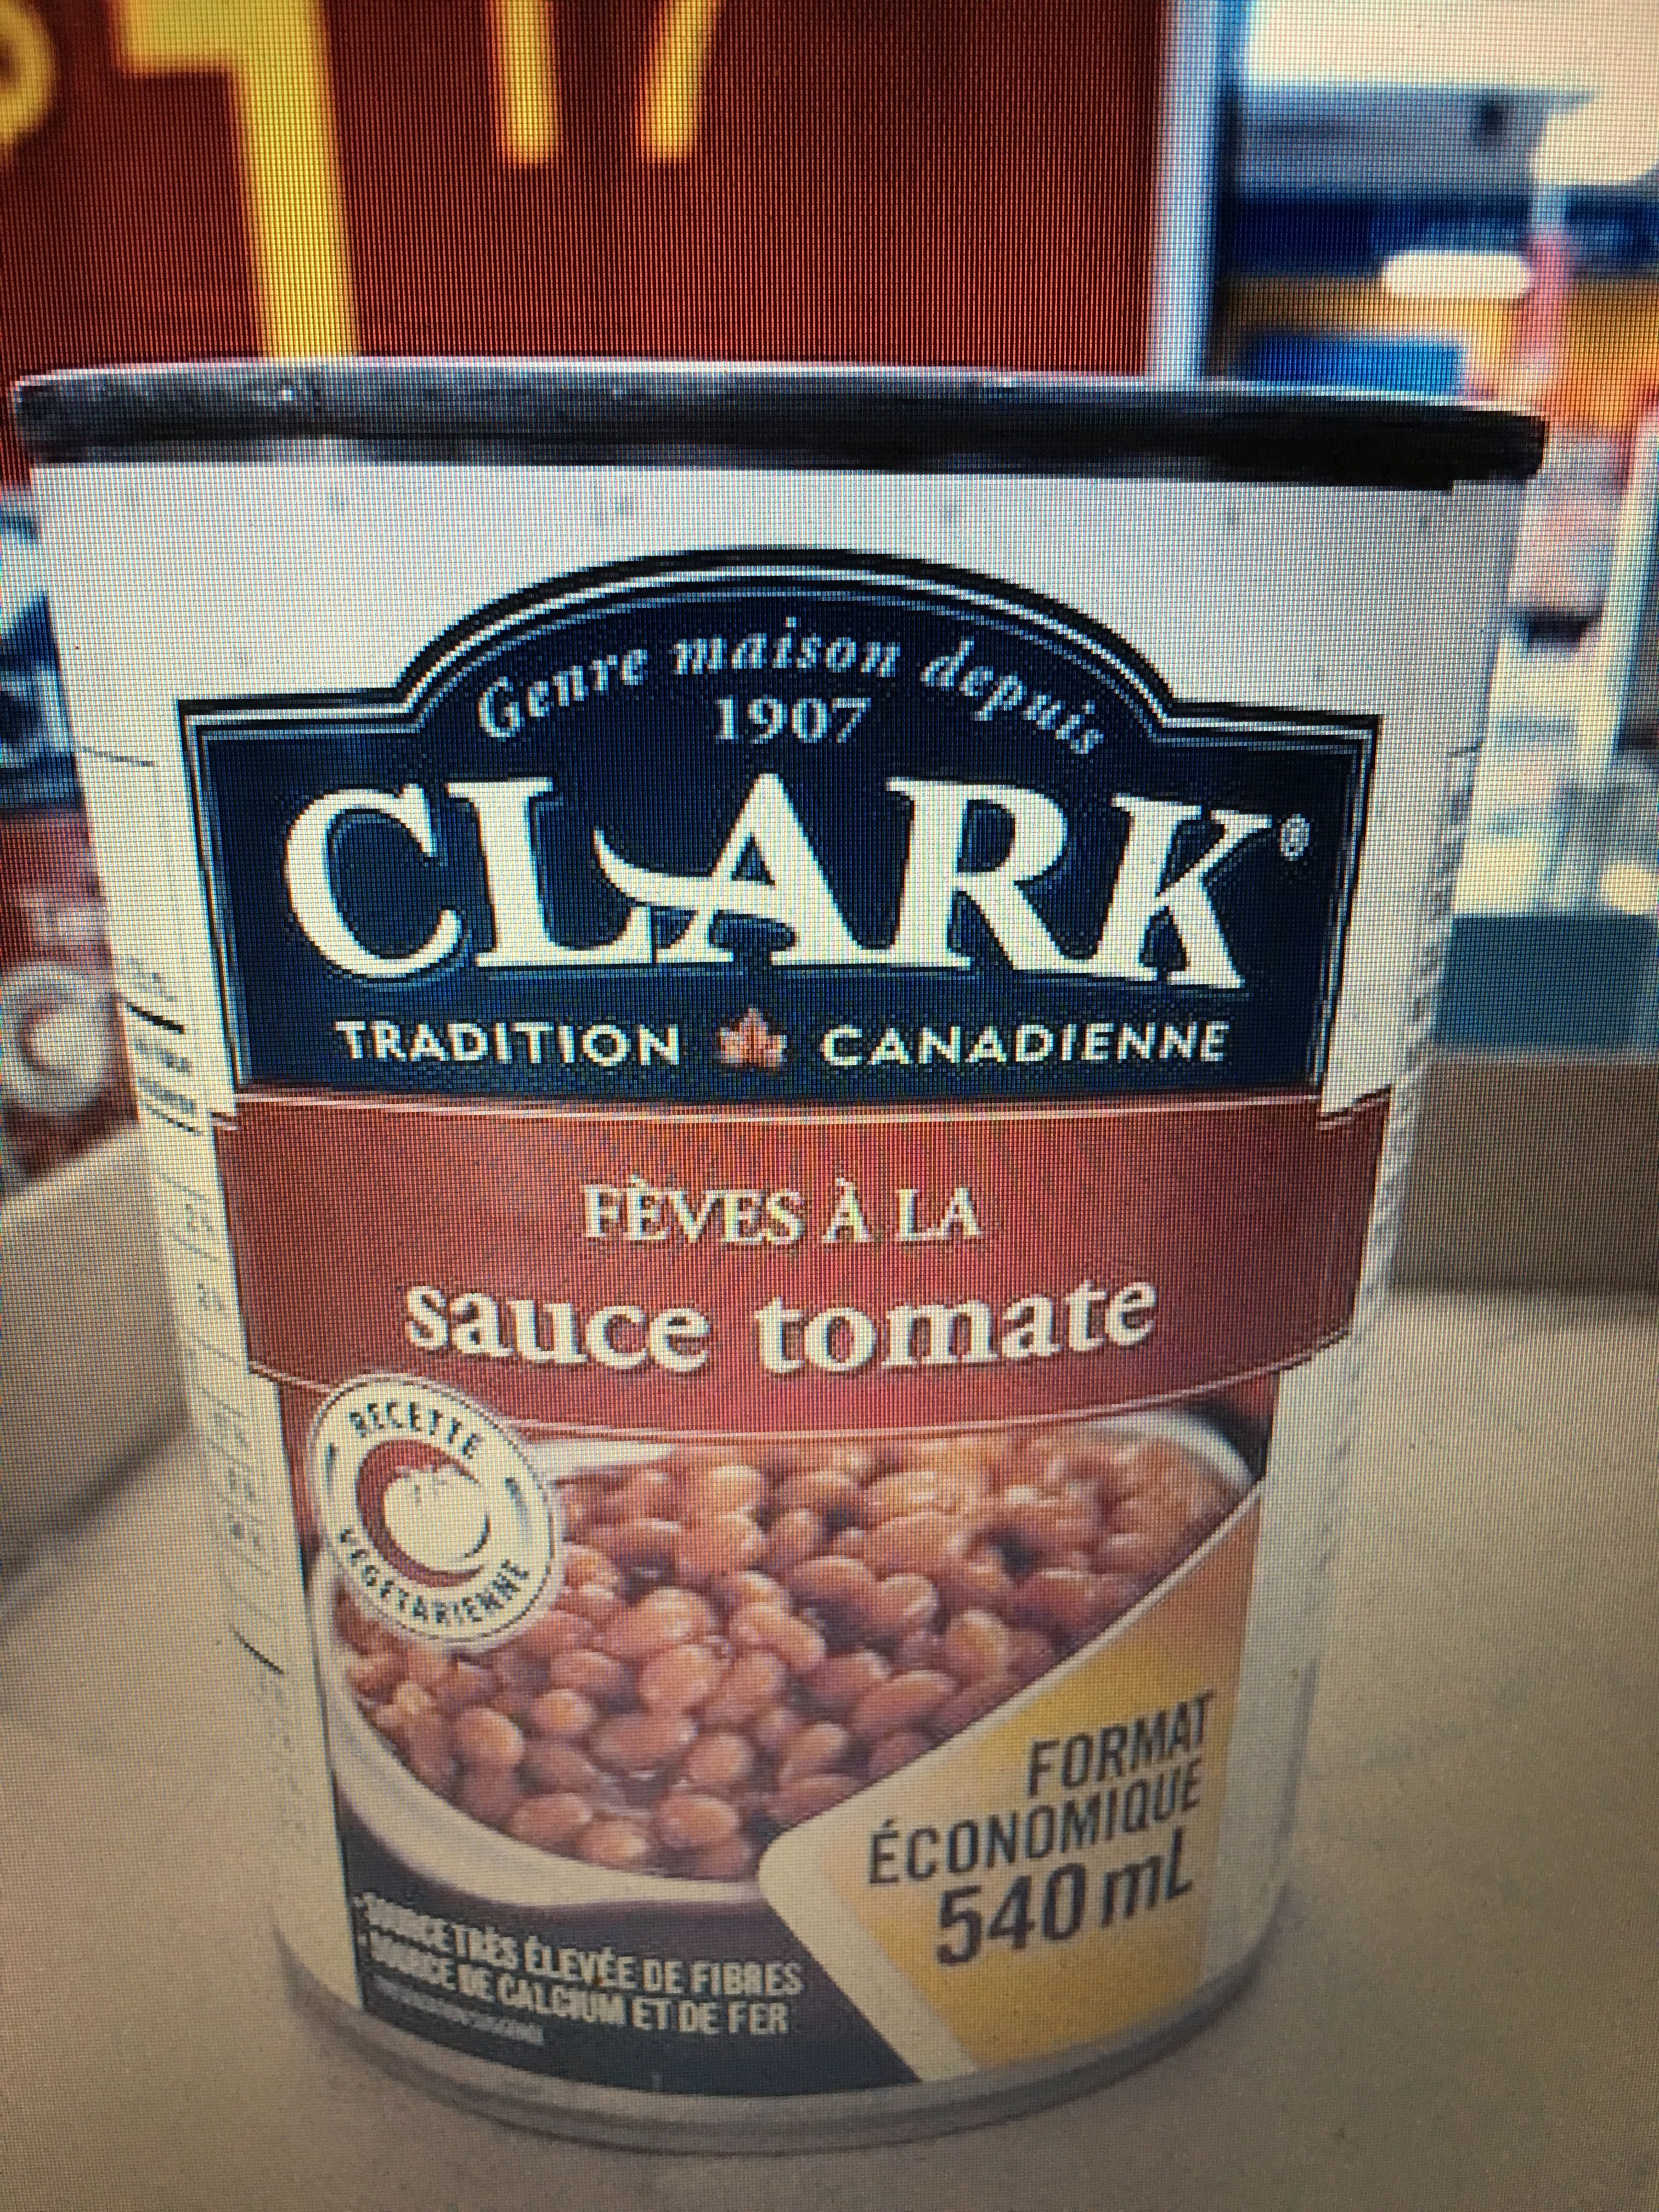 Feves A La sauce tomate - Product